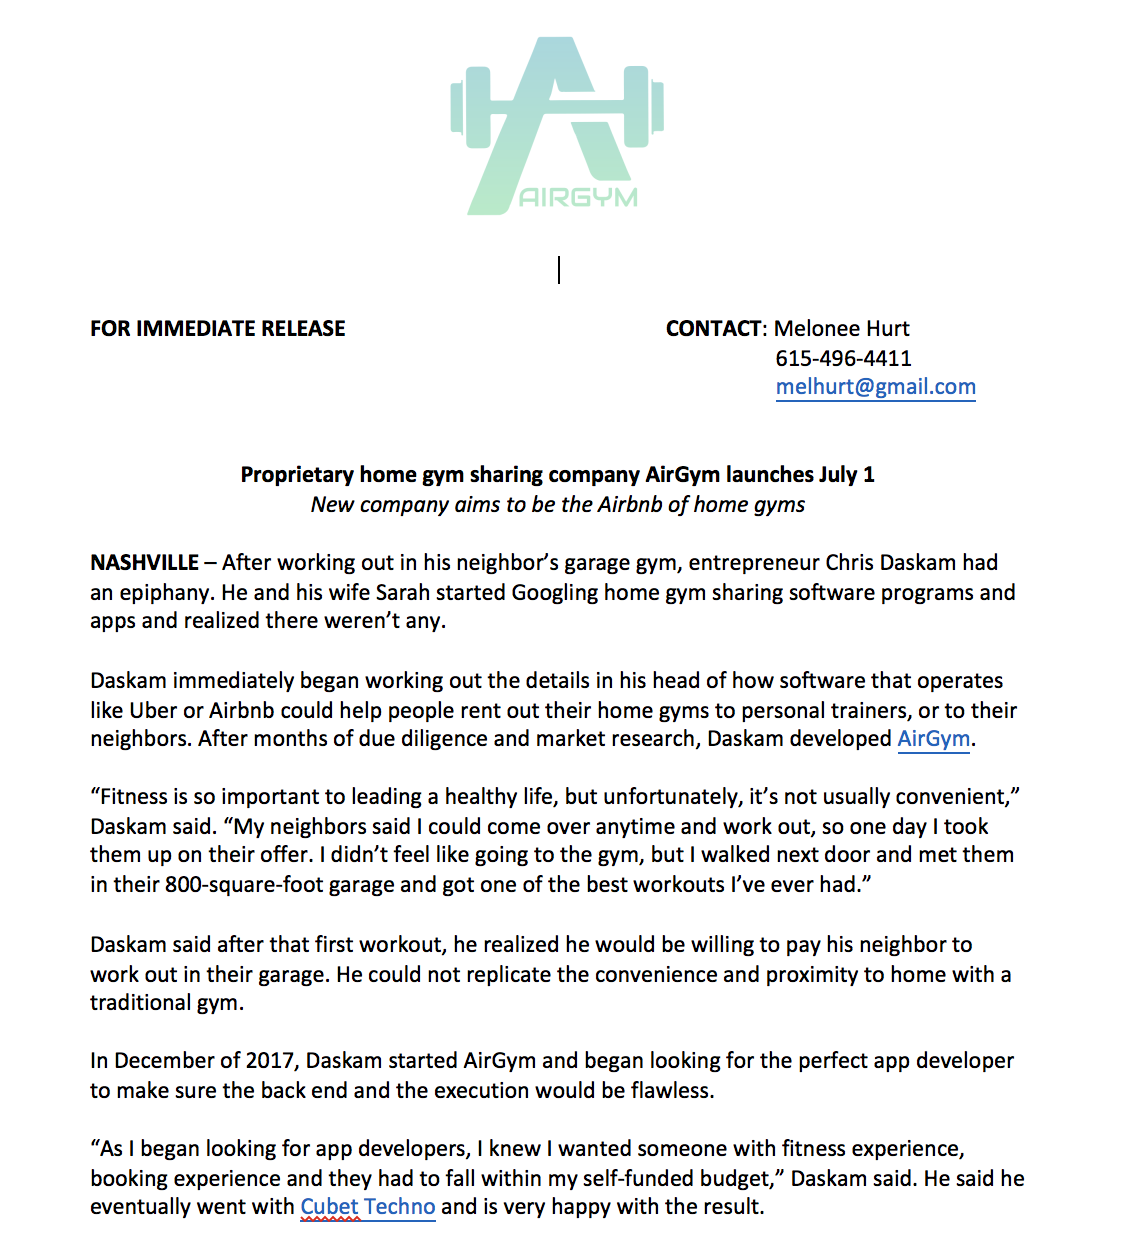 I was part of the team that helped launch AirGym, the newest app technology that allows home gym owners to rent their spaces out like an Airbnb. We garnered a lot of media attention from this release both on television and in print.